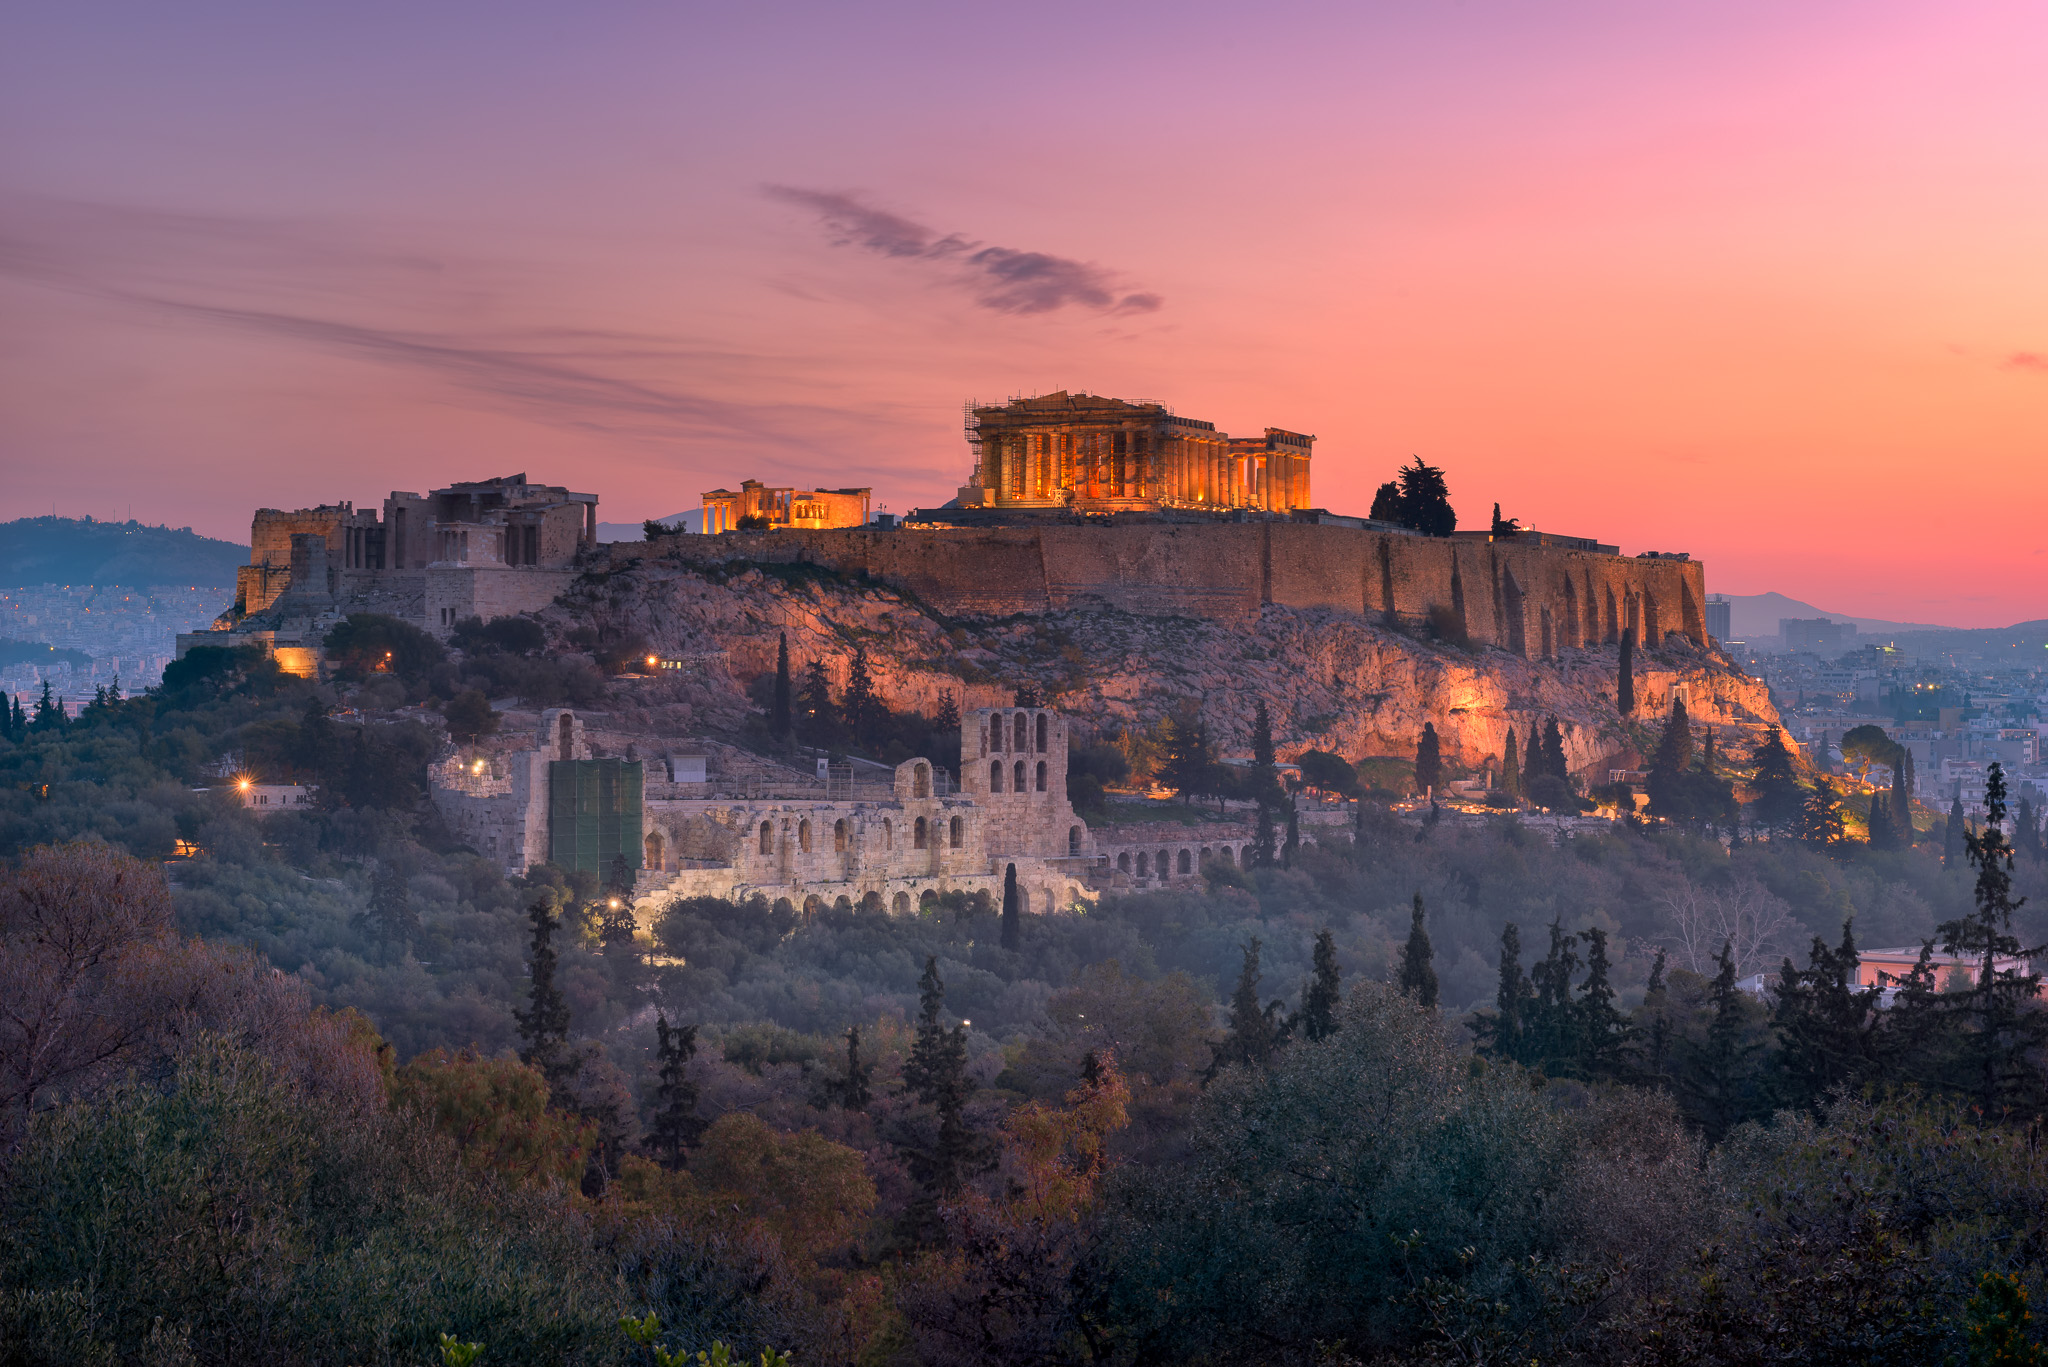 View of Acropolis from the Philopappos Hill in the Morning